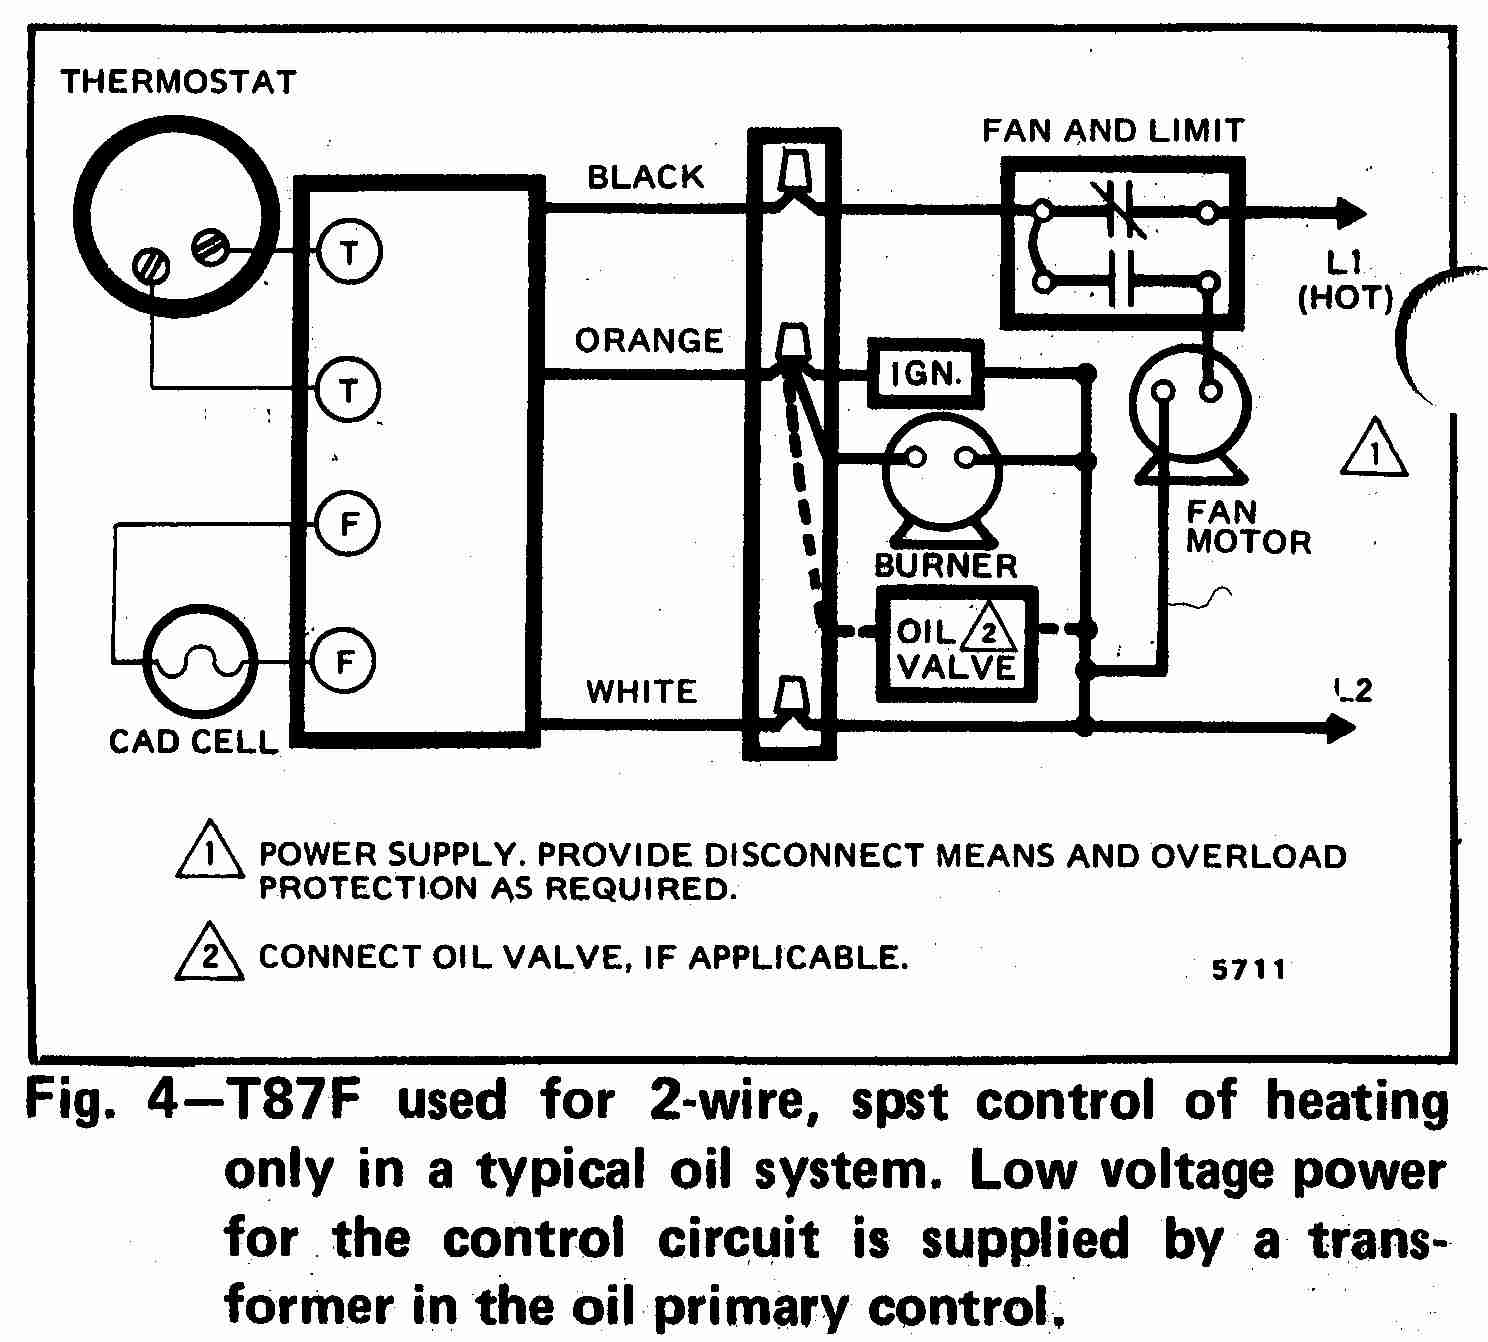 room thermostat wiring diagrams for hvac systems rh inspectapedia com heater wiring diagram 240v t stat elements